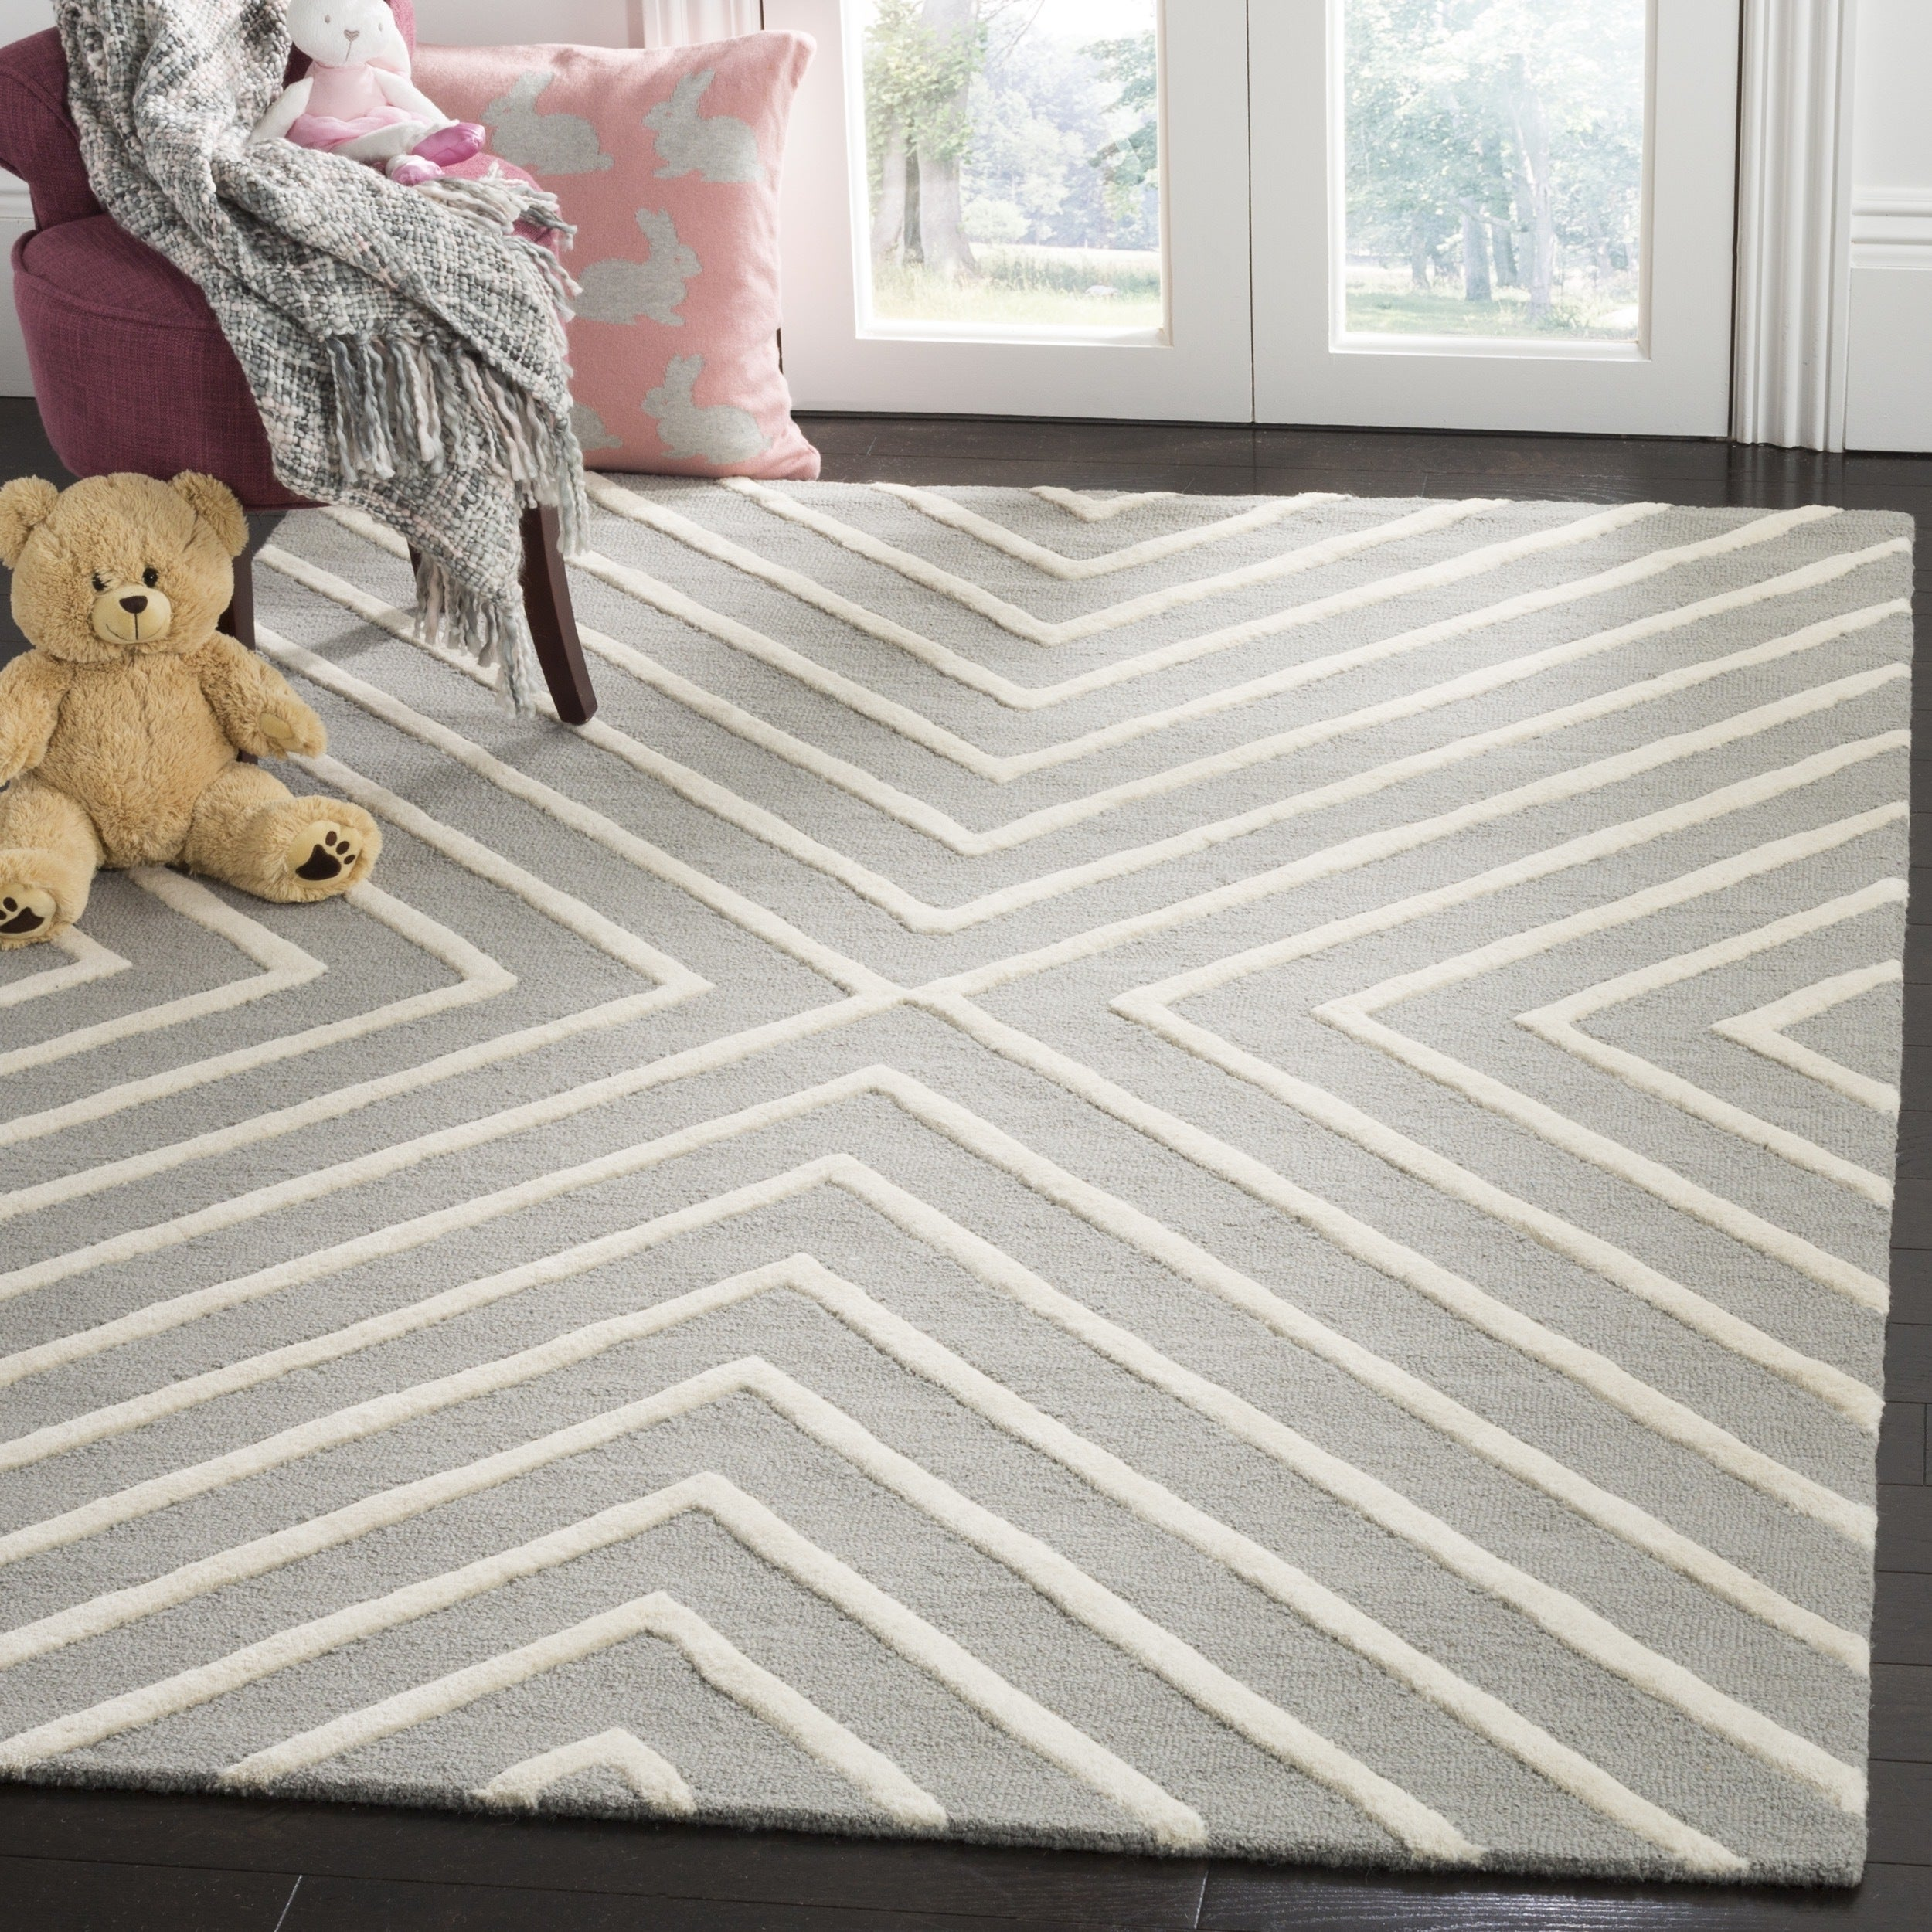 Safavieh Kids Transitional Geometric Hand Tufted Wool Grey Ivory Area Rug 3 X 5 On Free Shipping Today 16601875